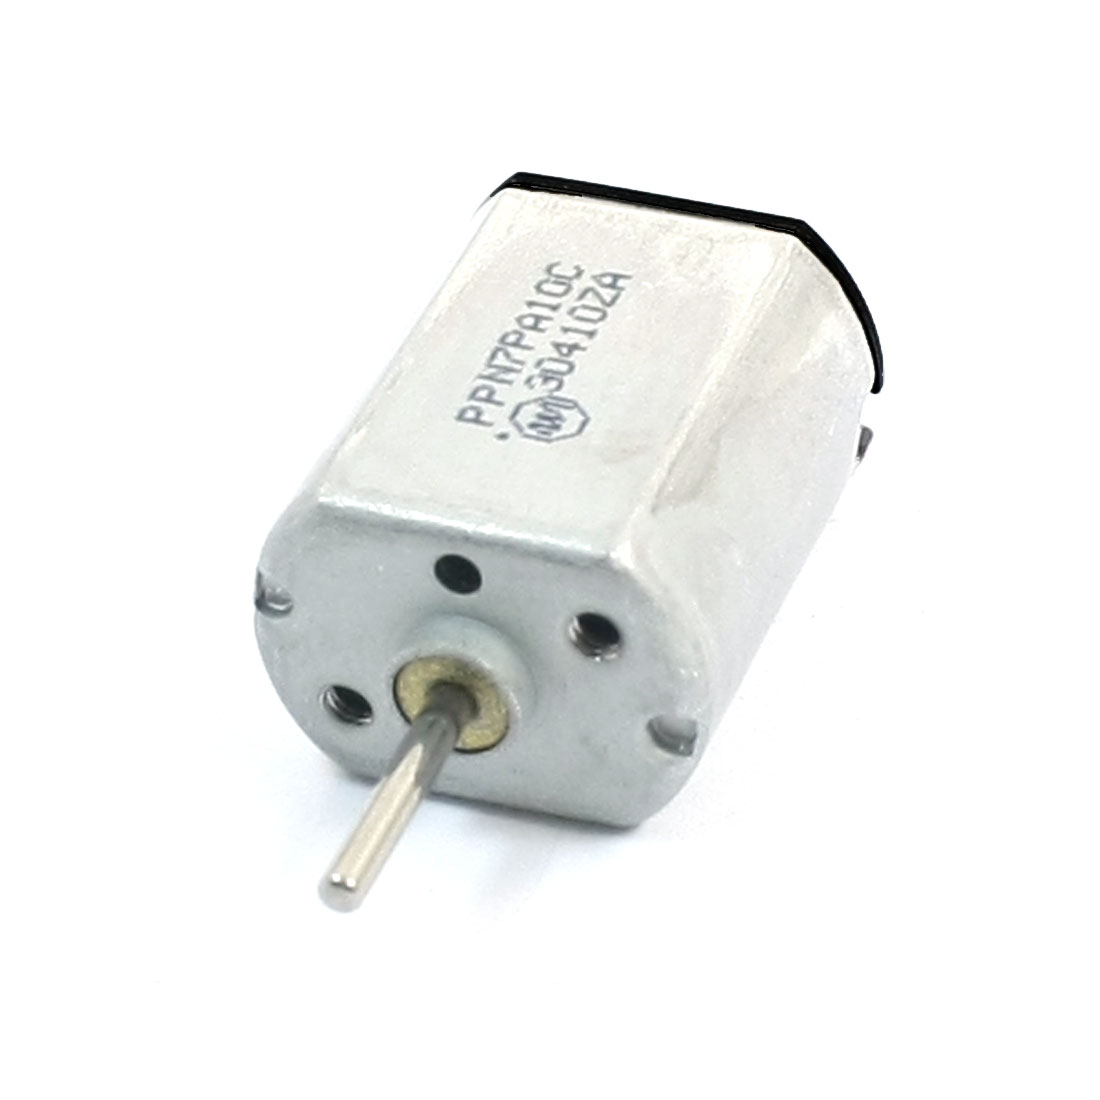 Replacement 6V 12000RPM 1mm Shaft Dia High Torque Mini DC Motor